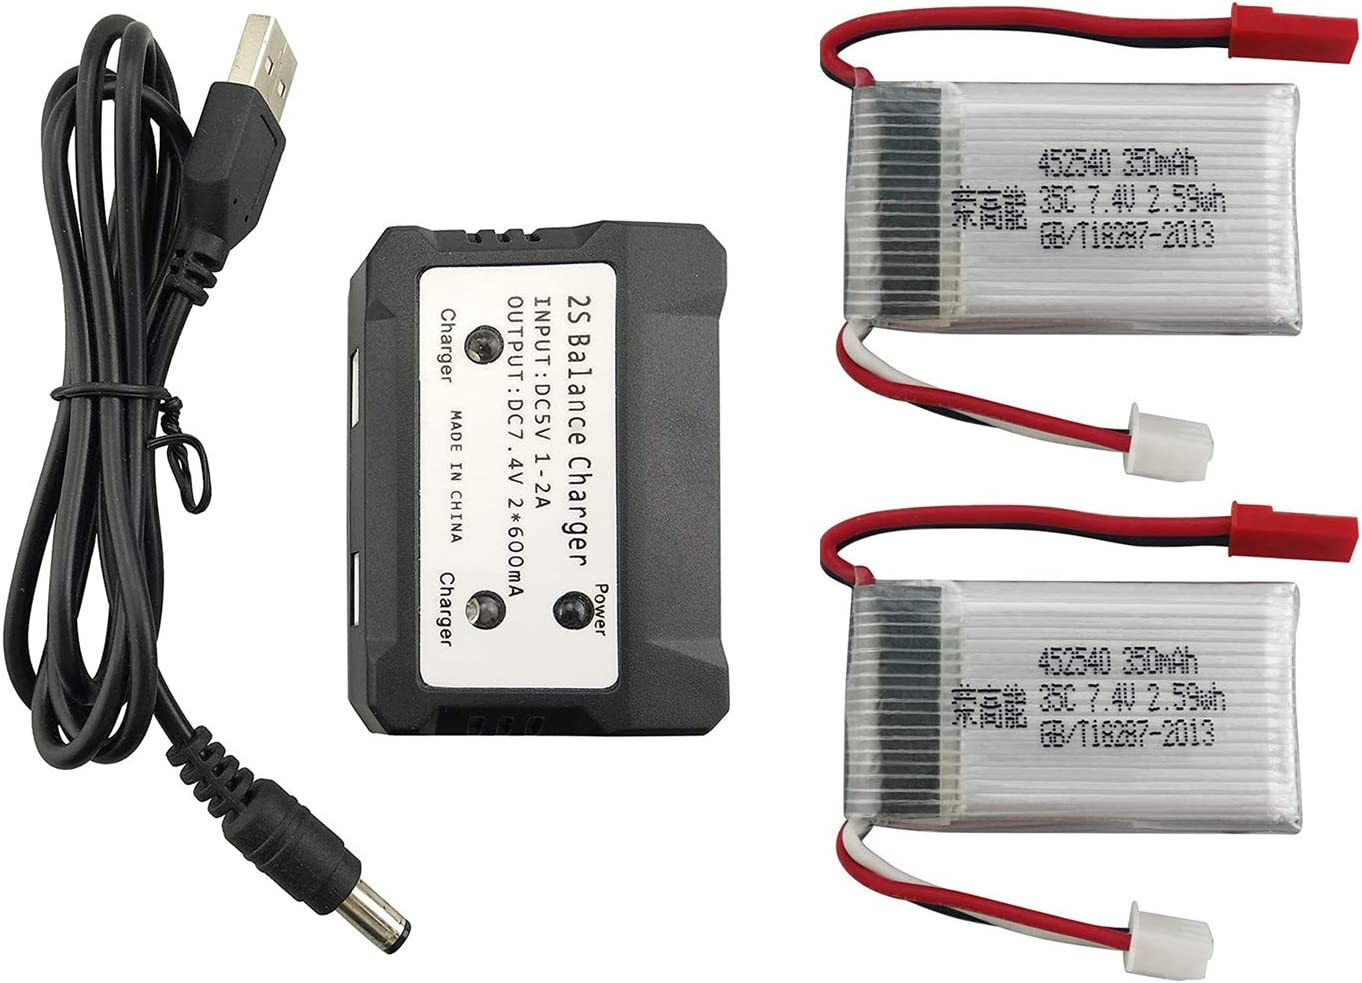 2PCS 7.4V 350mAh Lithium Battery Manufacturer direct delivery Department store with 1PCS in Charger MJ for 2 1